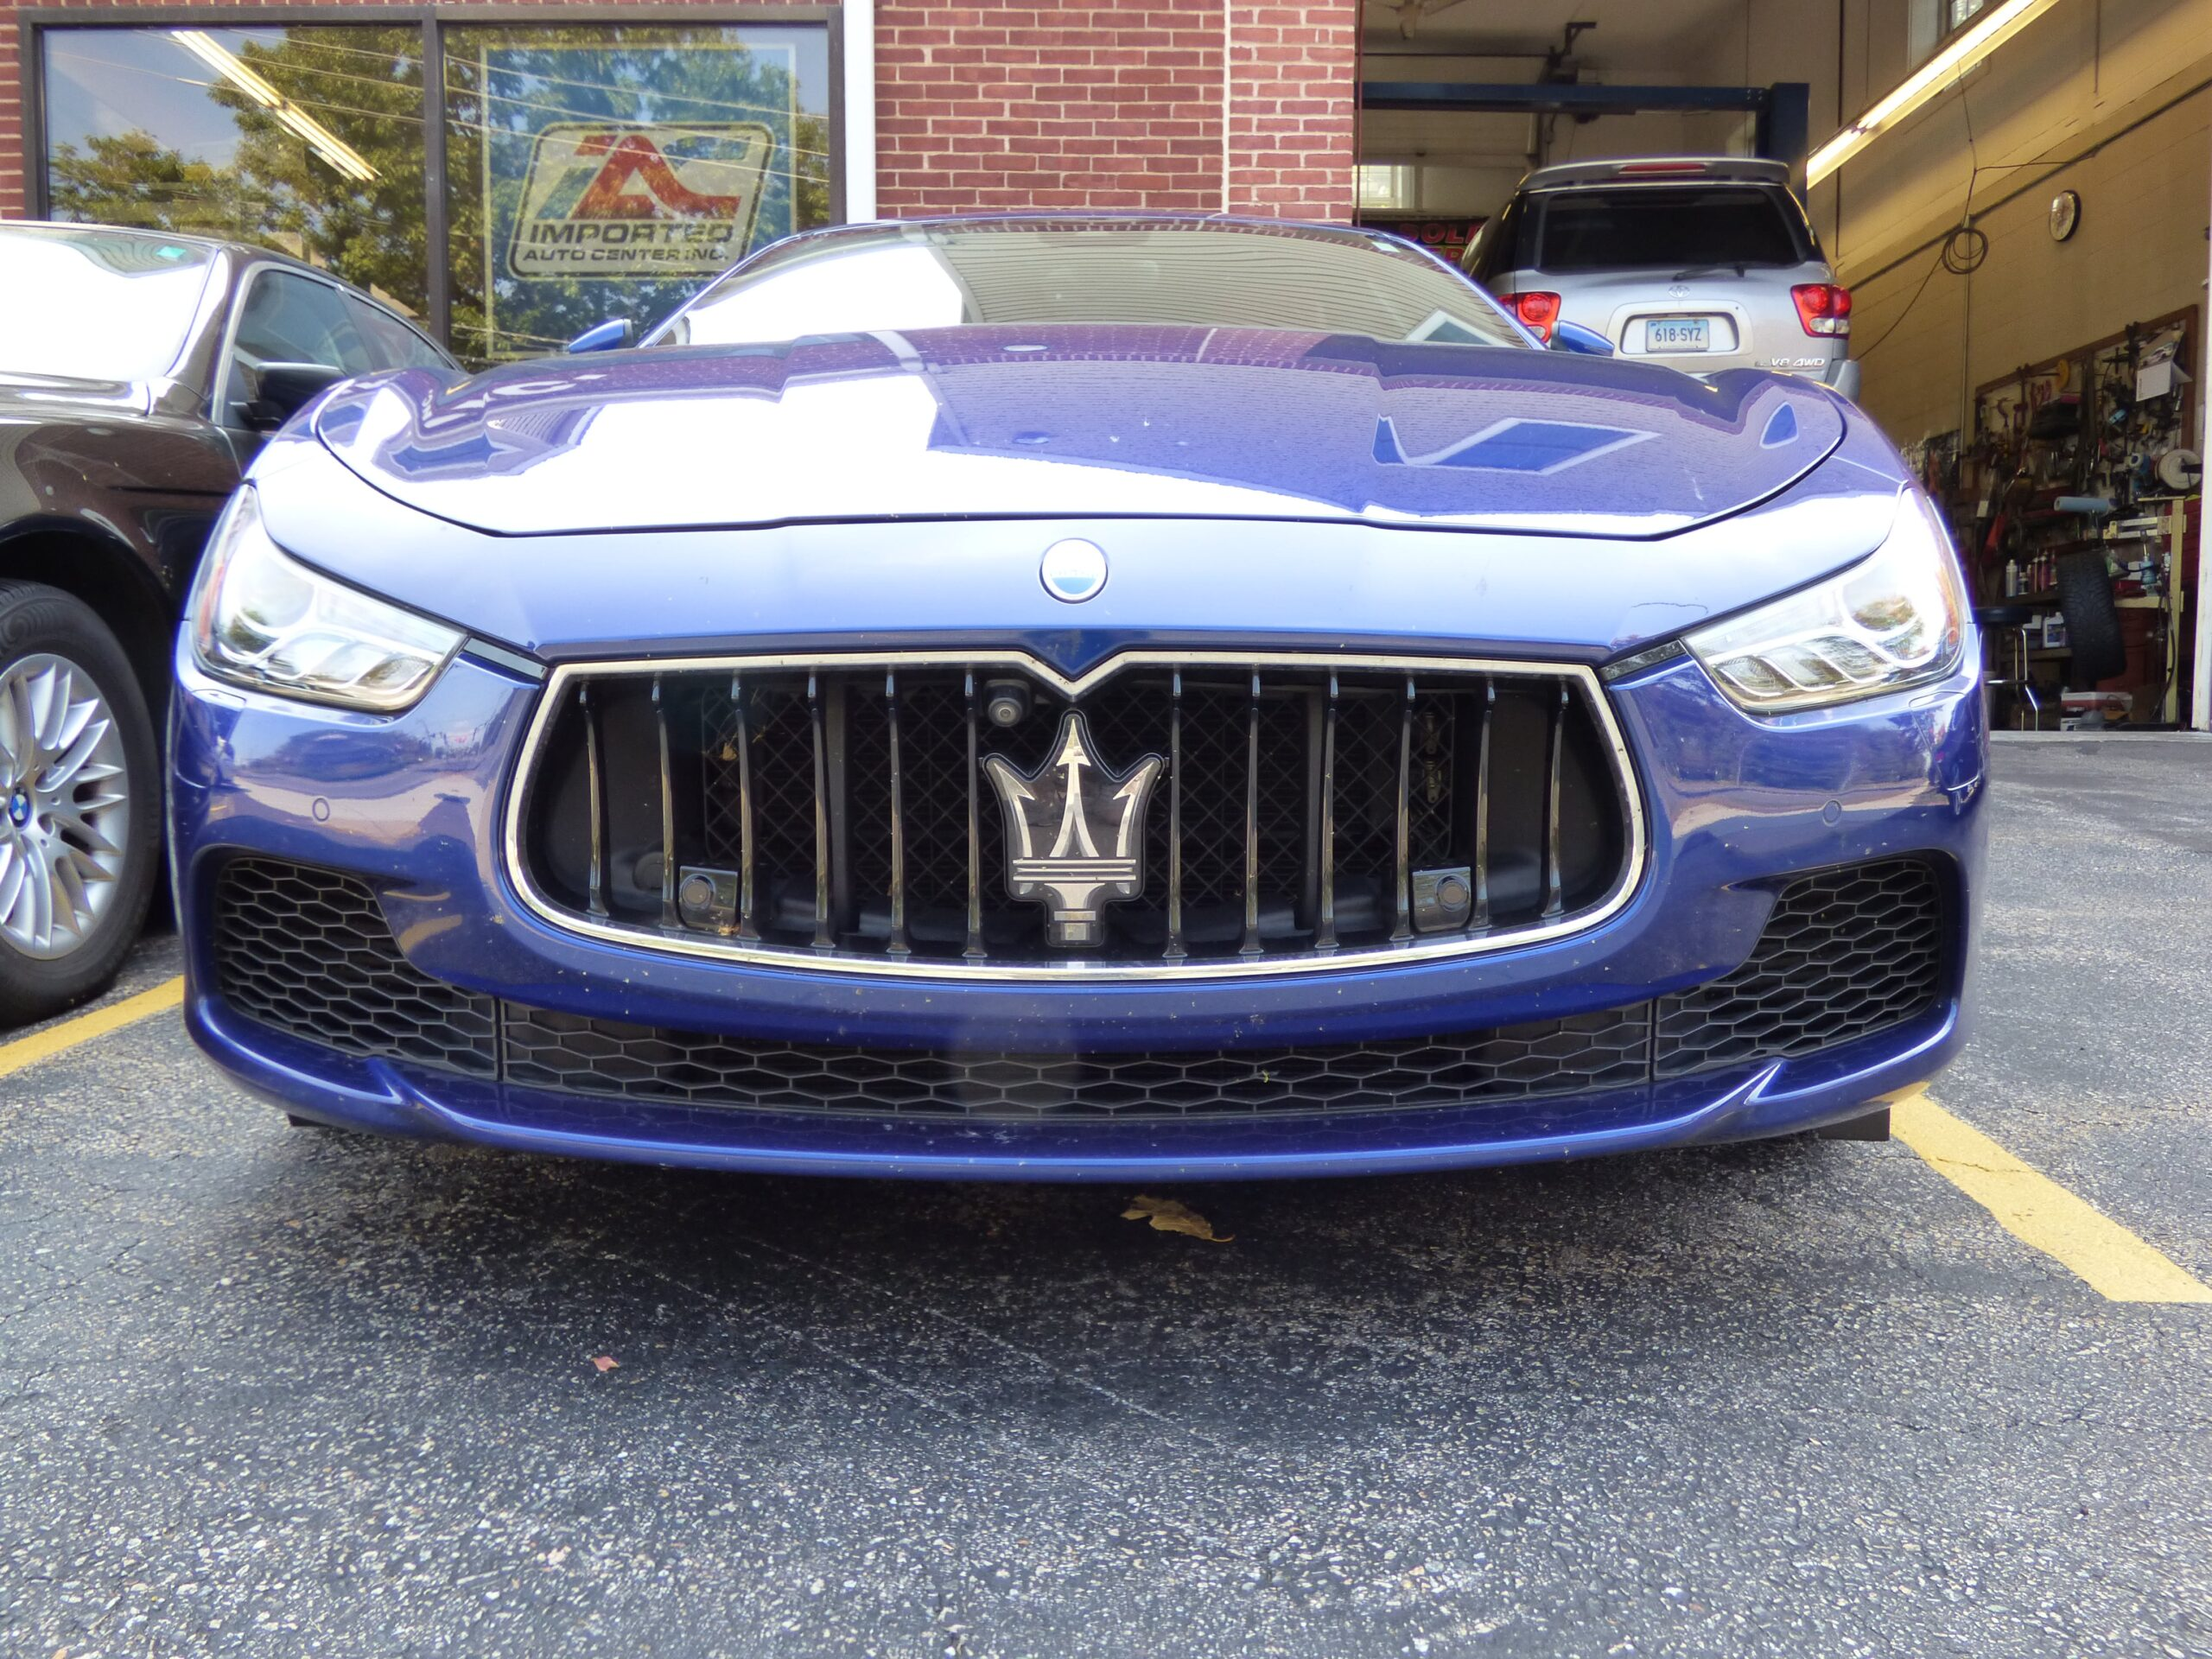 Blue Maserati parked in front of imported auto center